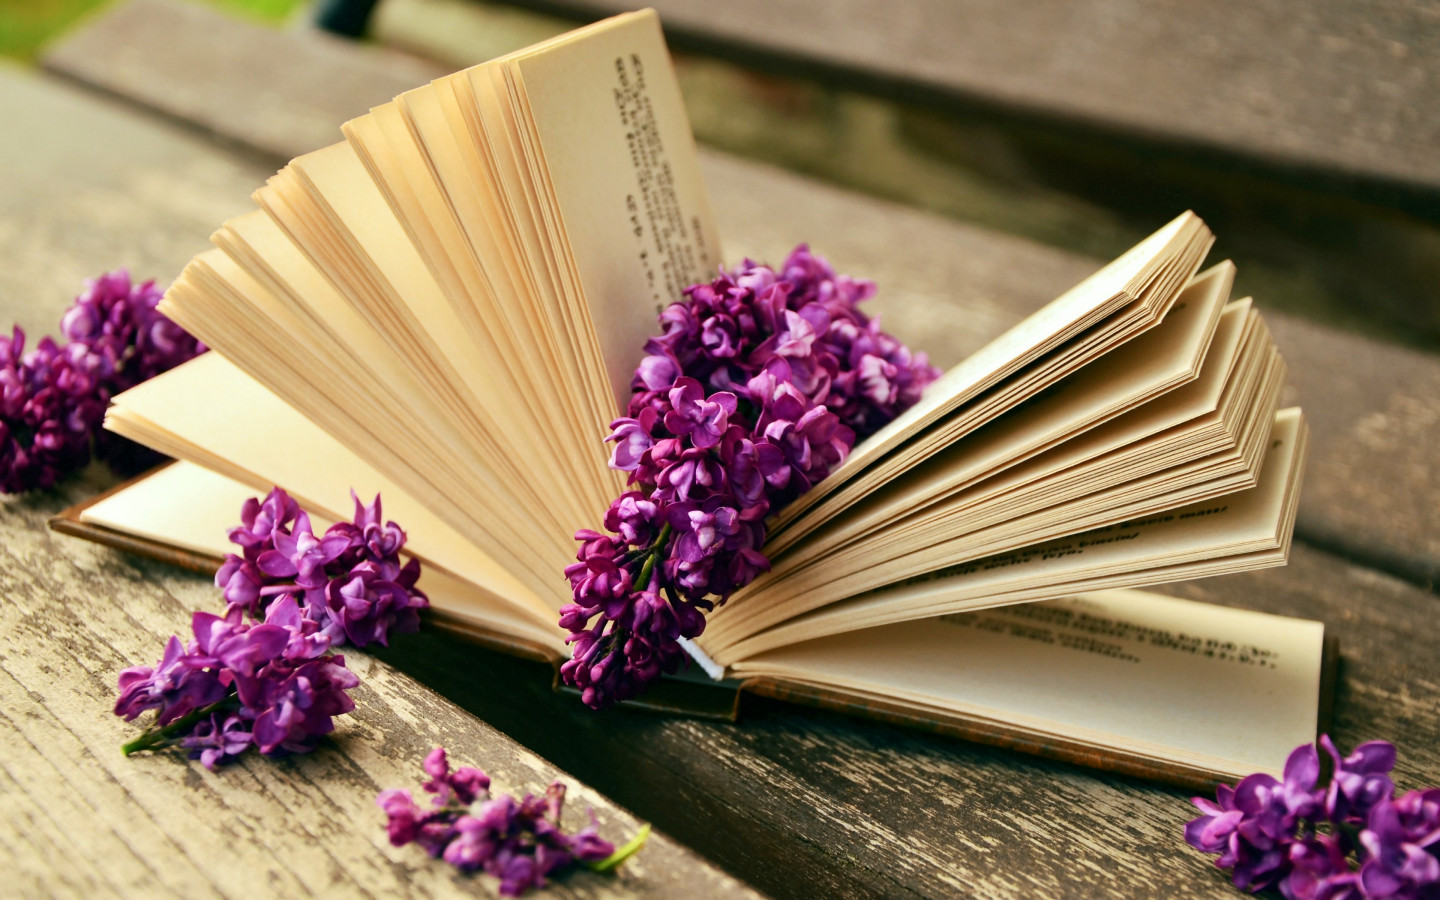 Lilac flowers and a good book | 1440x900 wallpaper